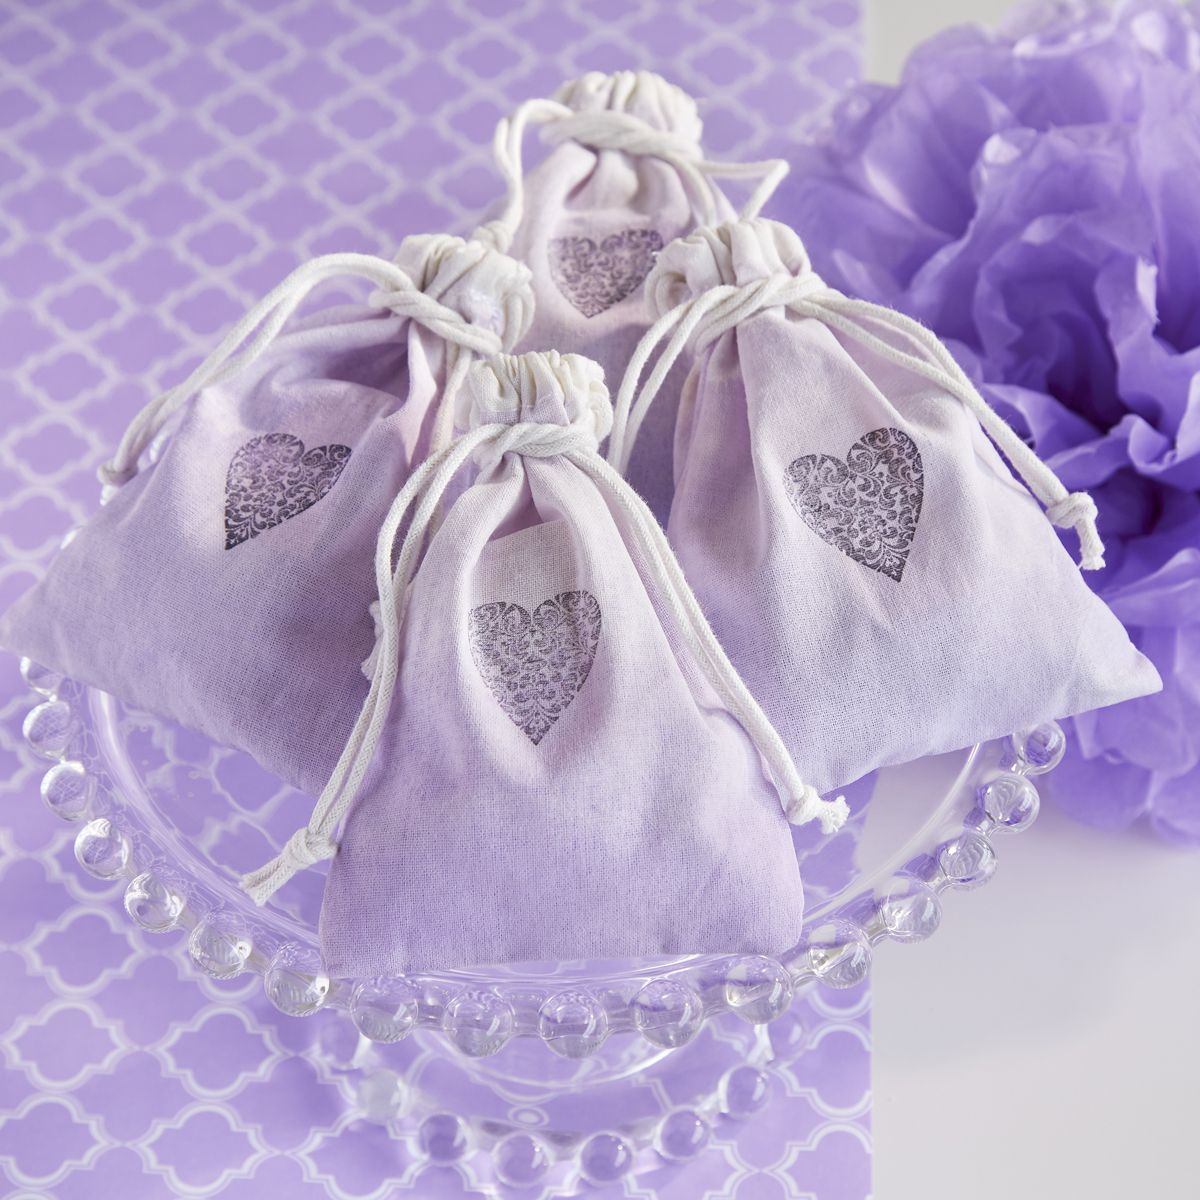 Use these stylish bags to create a uniform look for your wedding or party favors and add signature accents to your tables. Muslin is a wonderful option for your shabby chic or rustic- themed wedding. Customize by adding your own stamp or color wash.